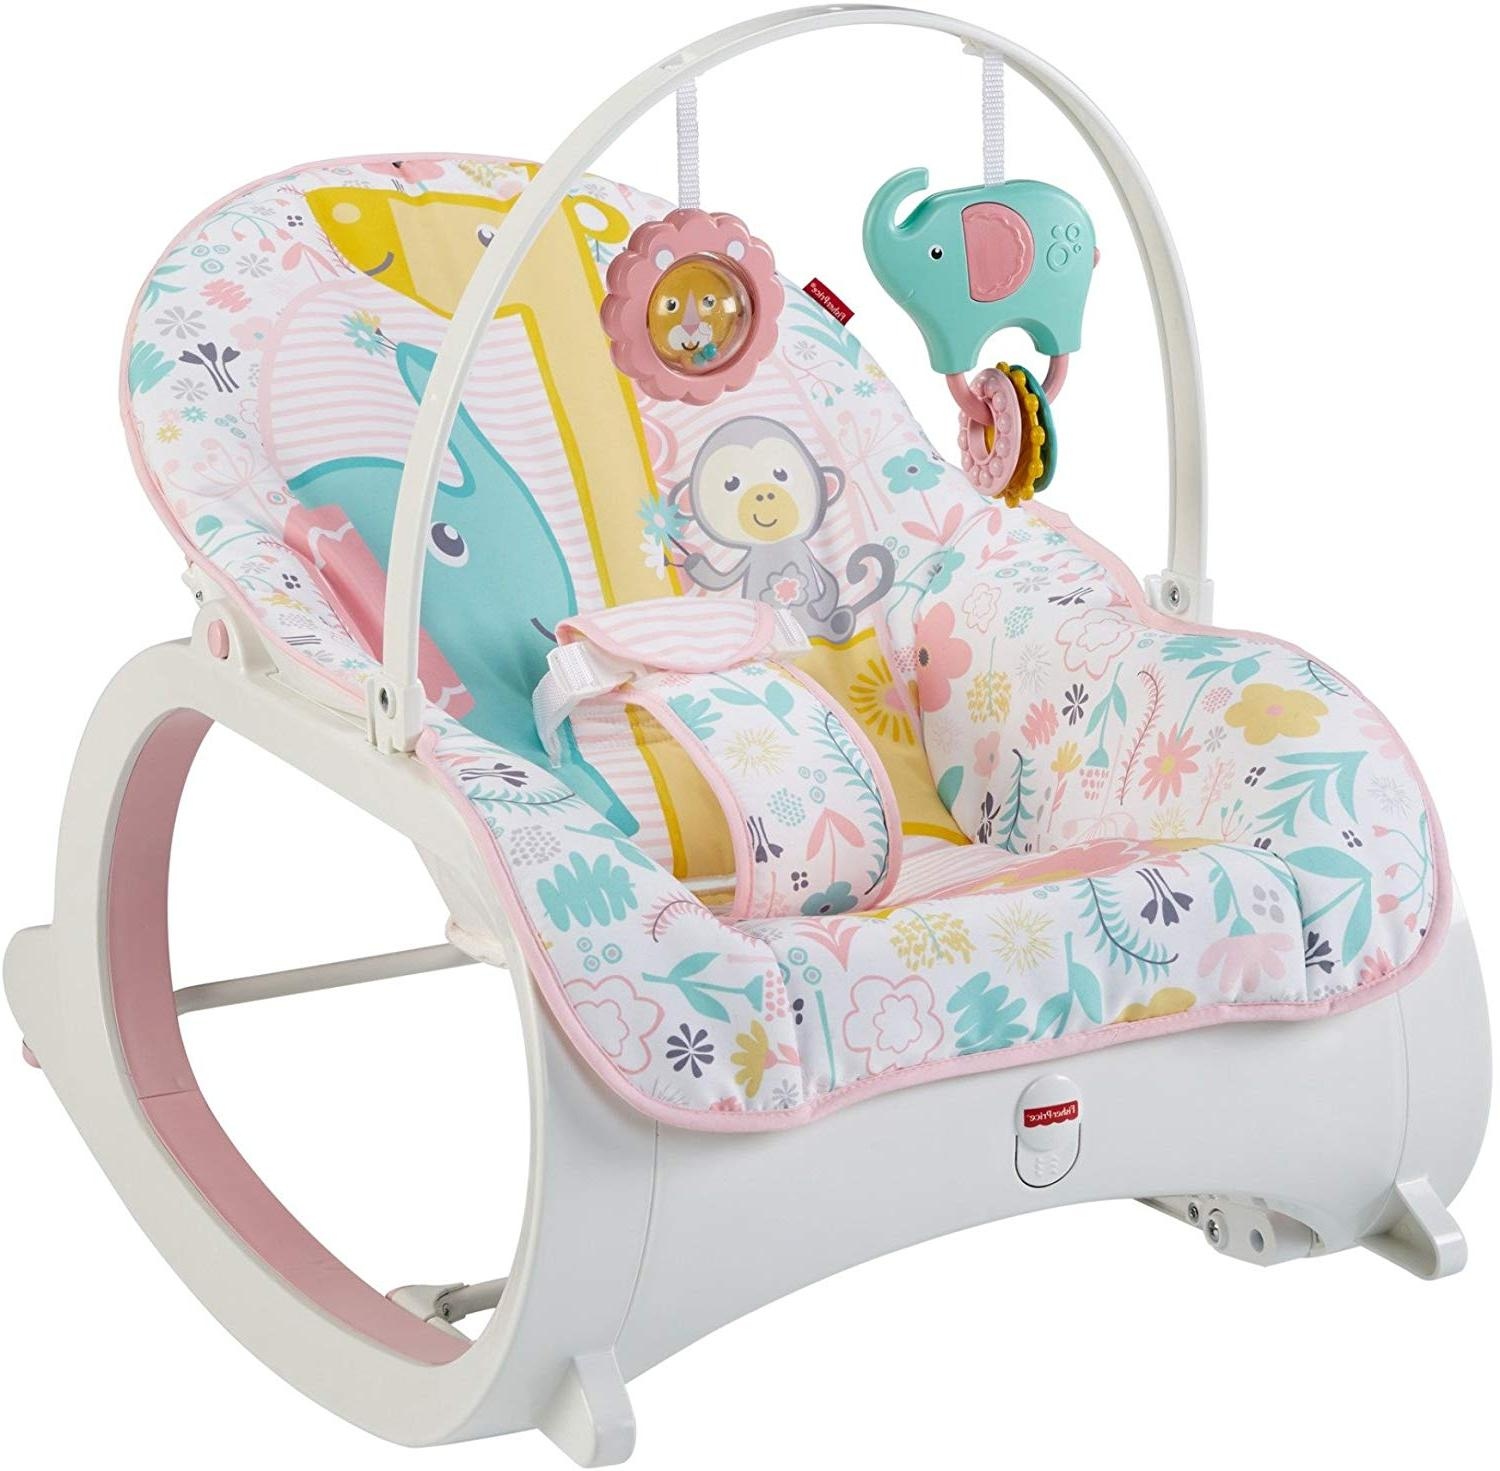 BABY INFANT Toddler Newborn Swing Nap